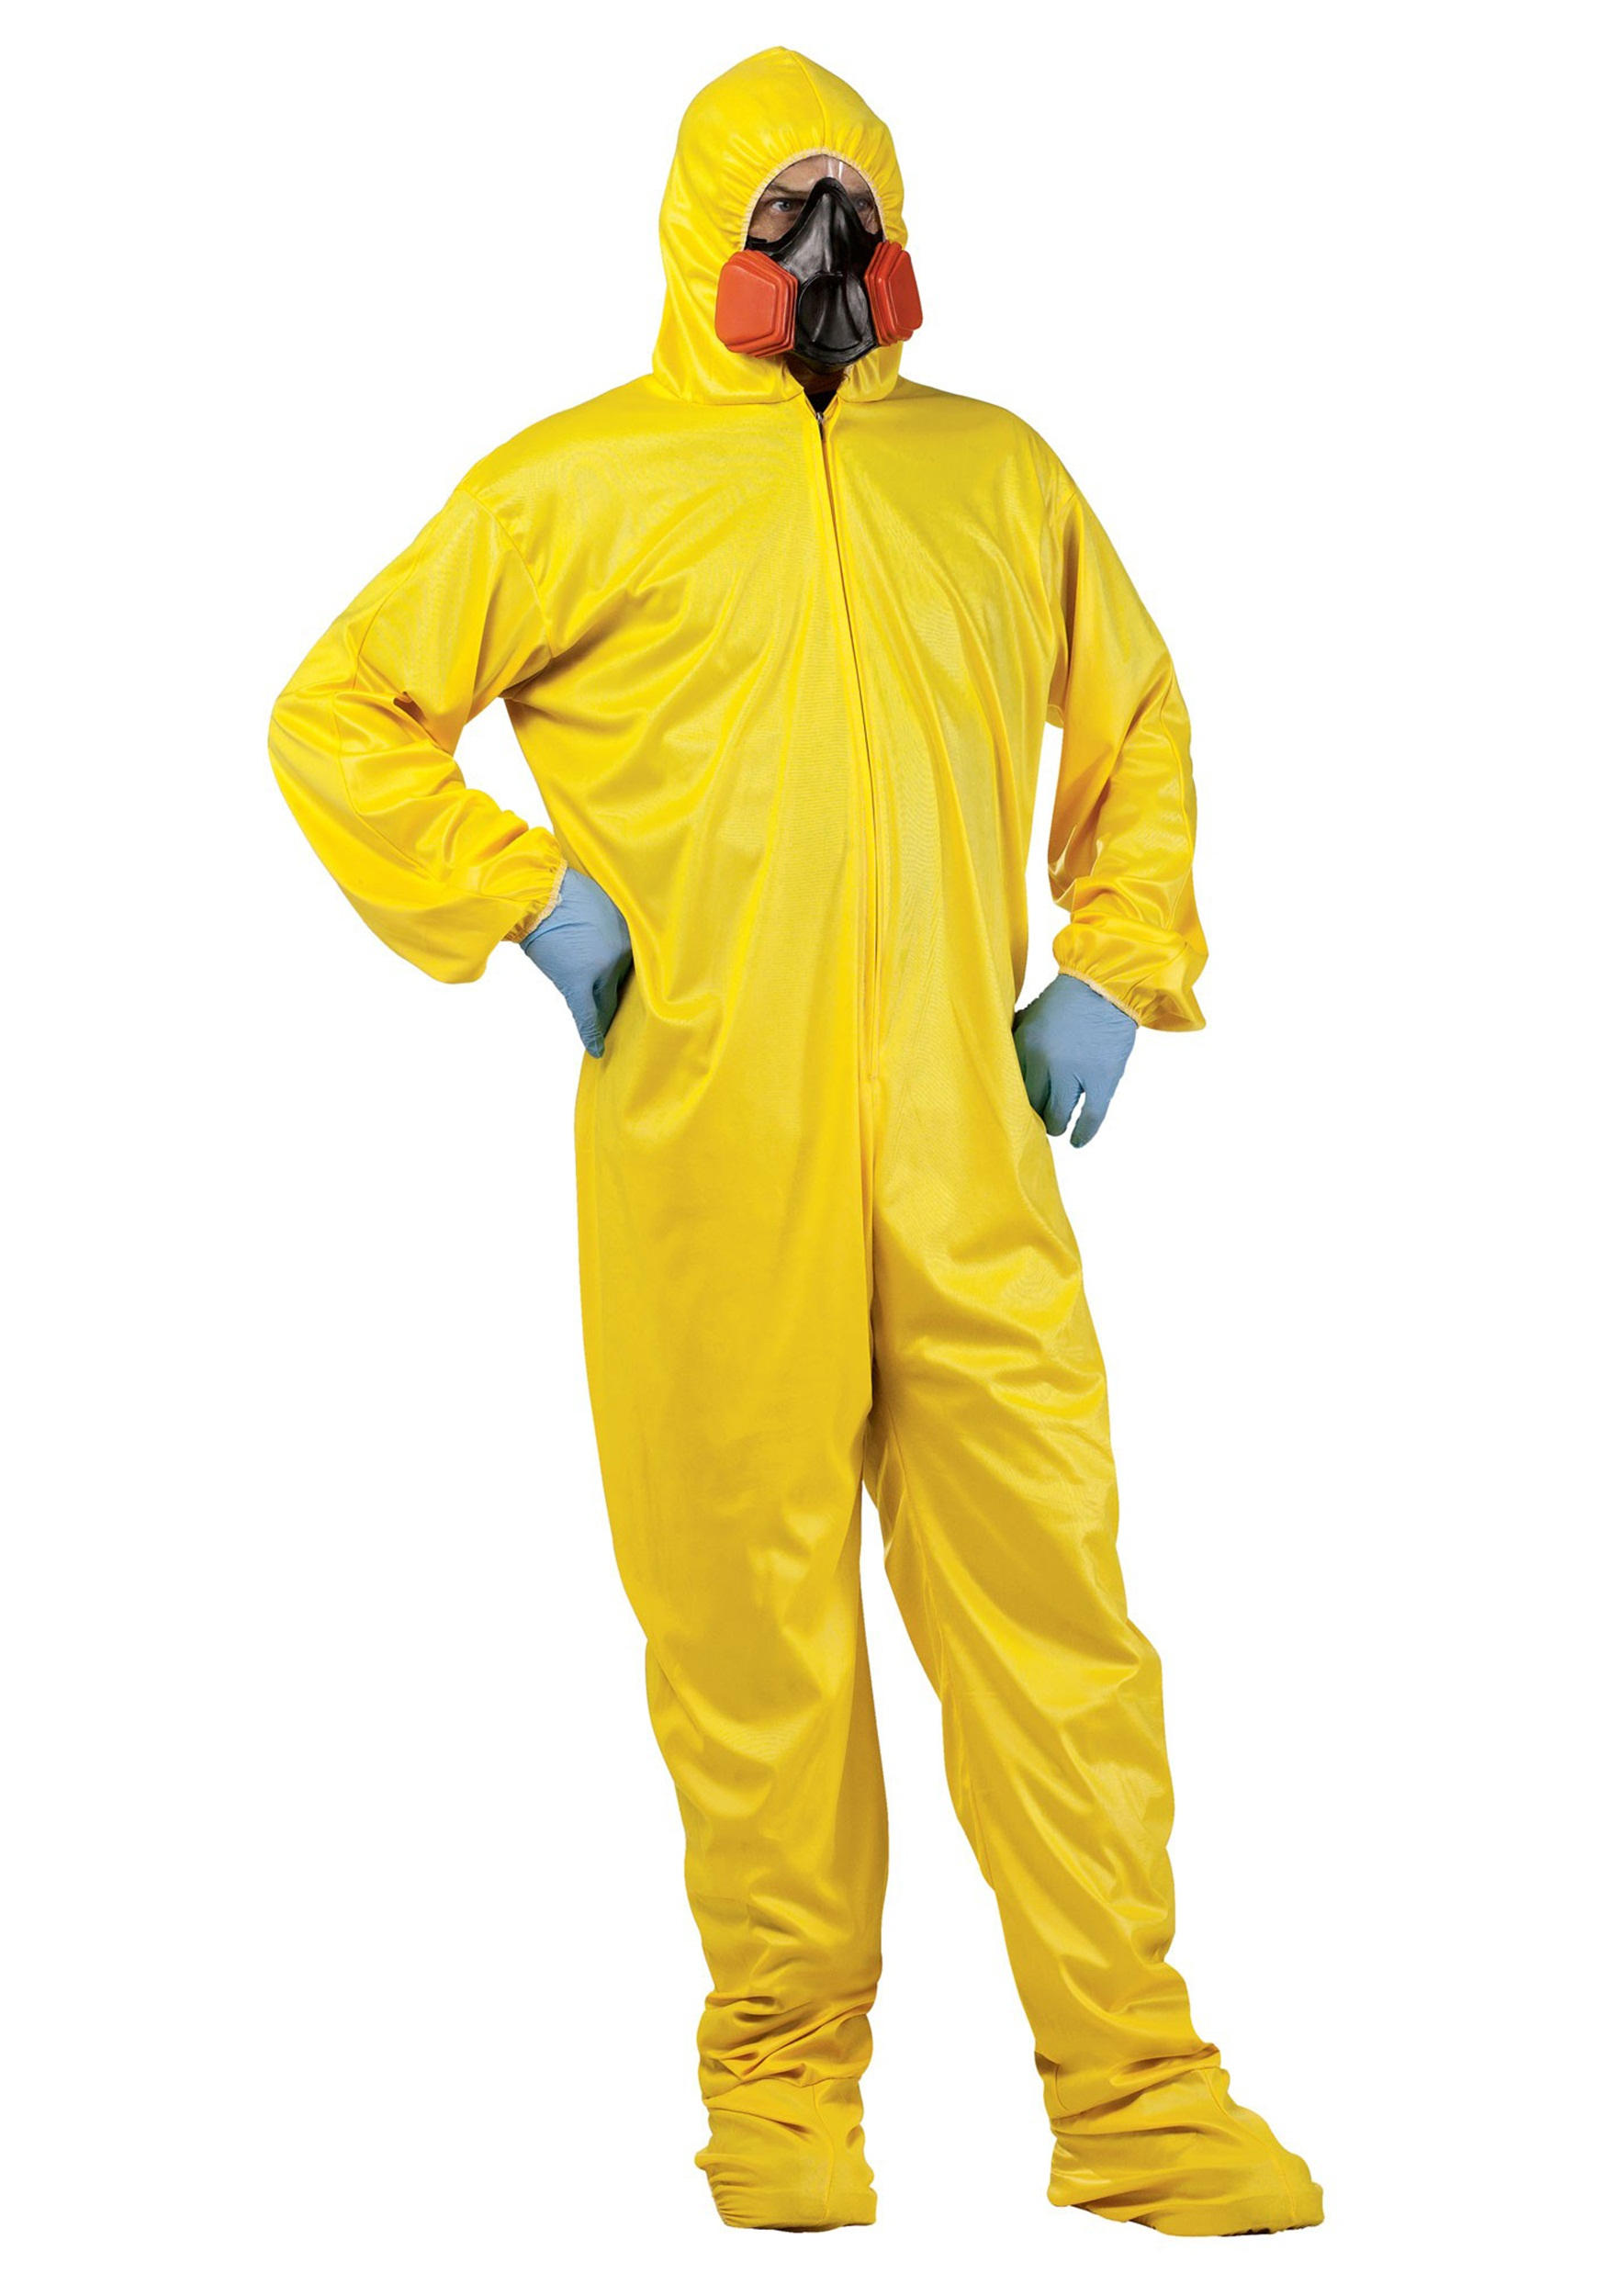 HAZMAT Suit & Mask Costume.